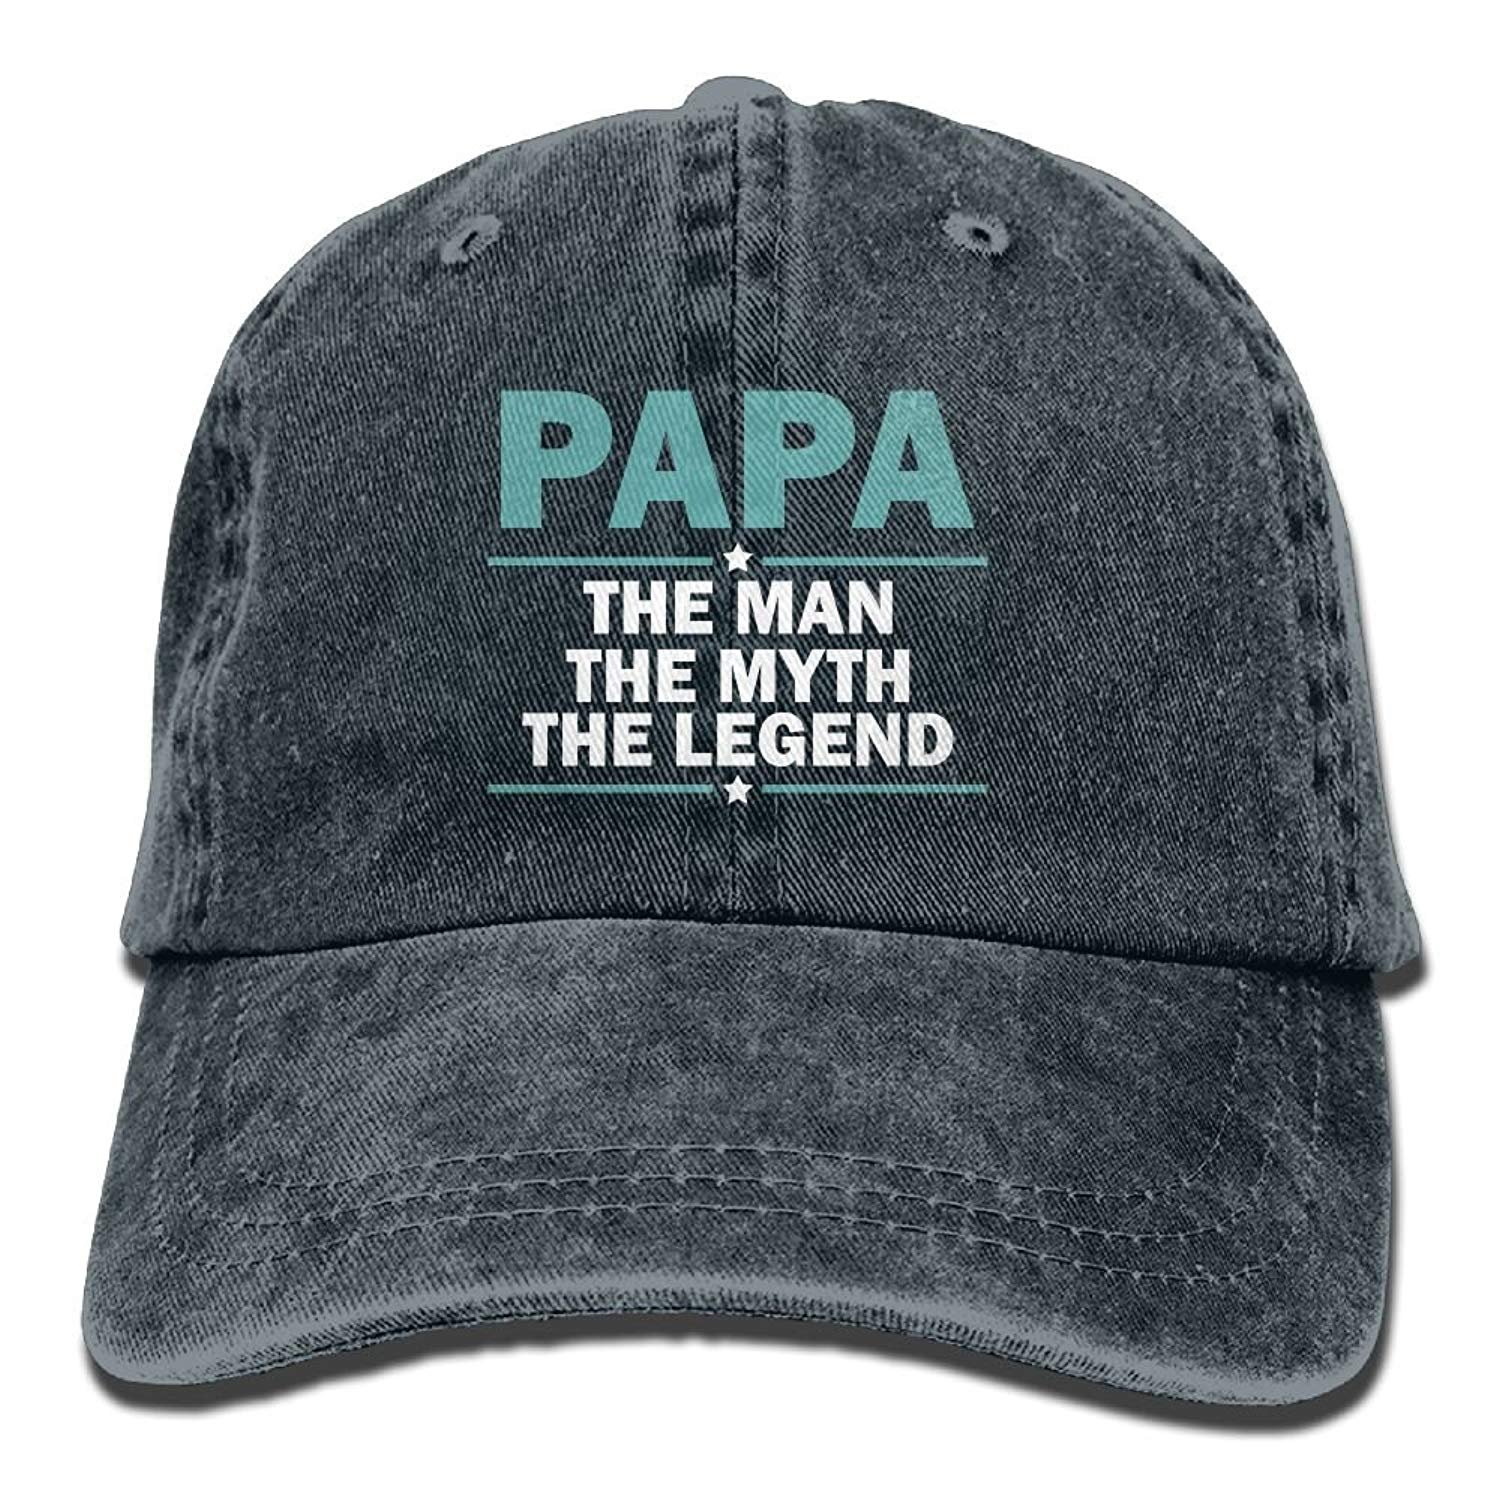 Papa The Man The Myth The Legend Plain Adjustable Cowboy Cap Denim Hat for Women and Men